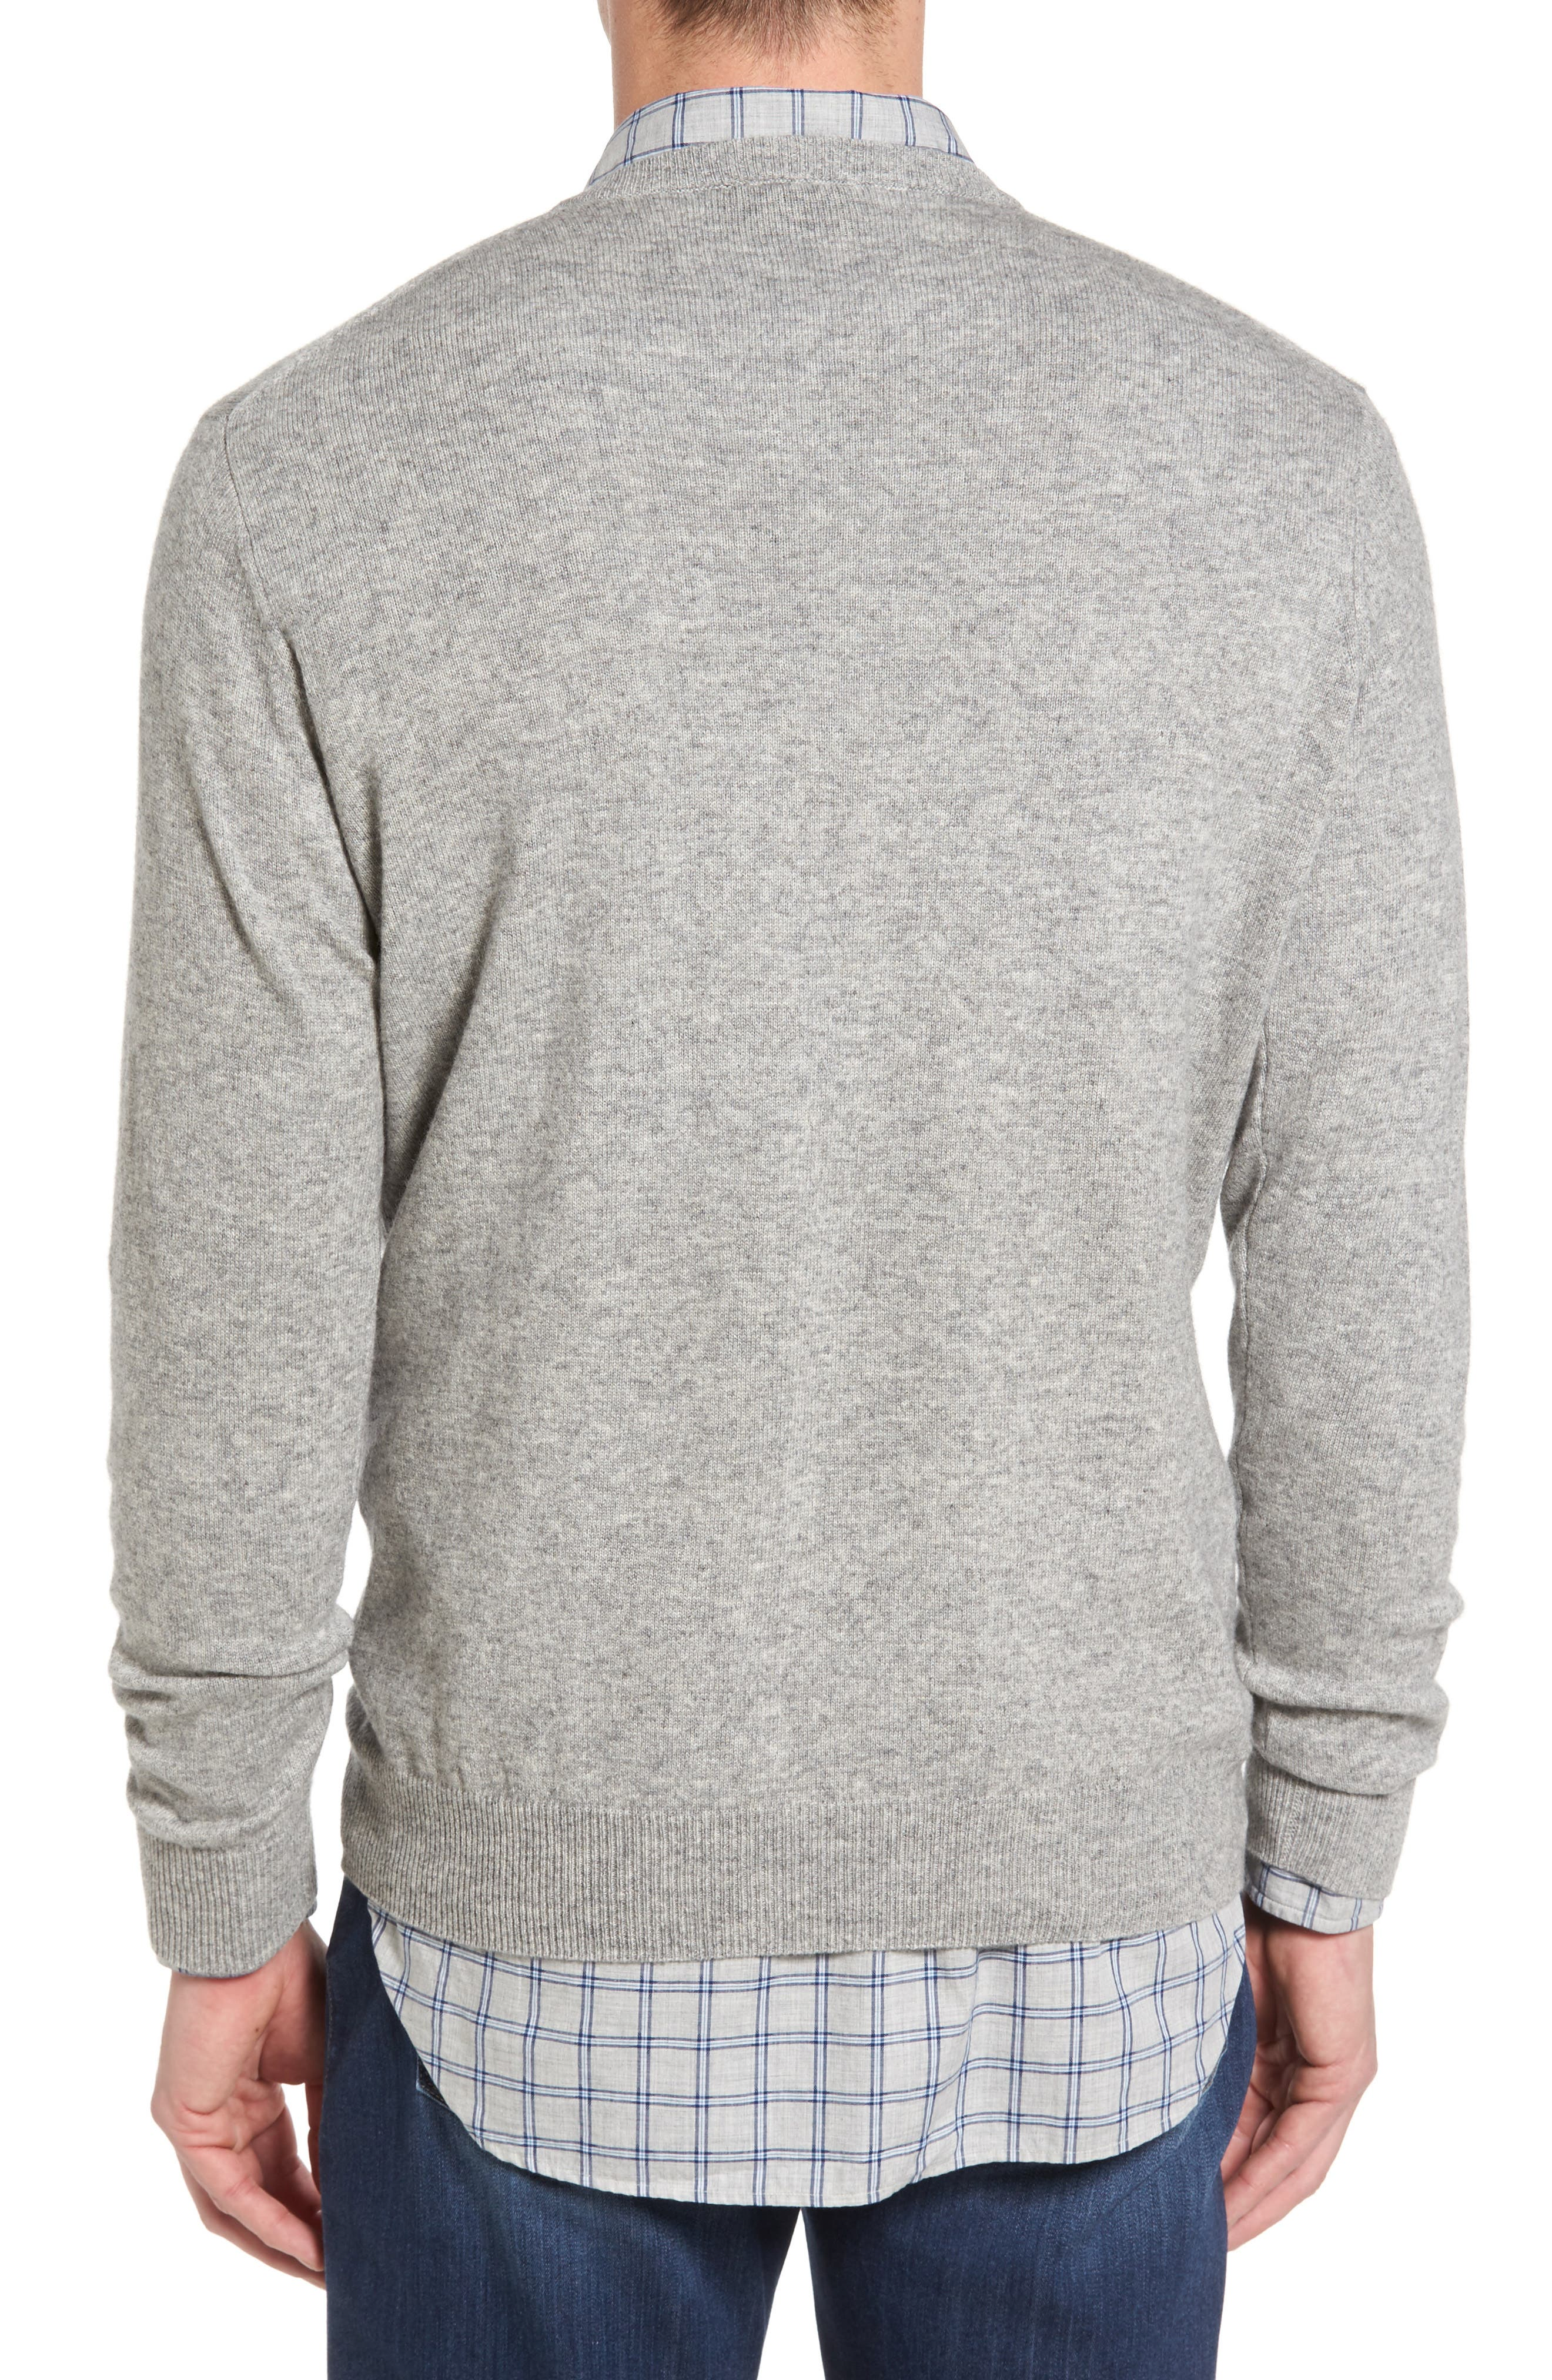 'Inchbonnie' Wool & Cashmere V-Neck Sweater,                             Alternate thumbnail 2, color,                             020